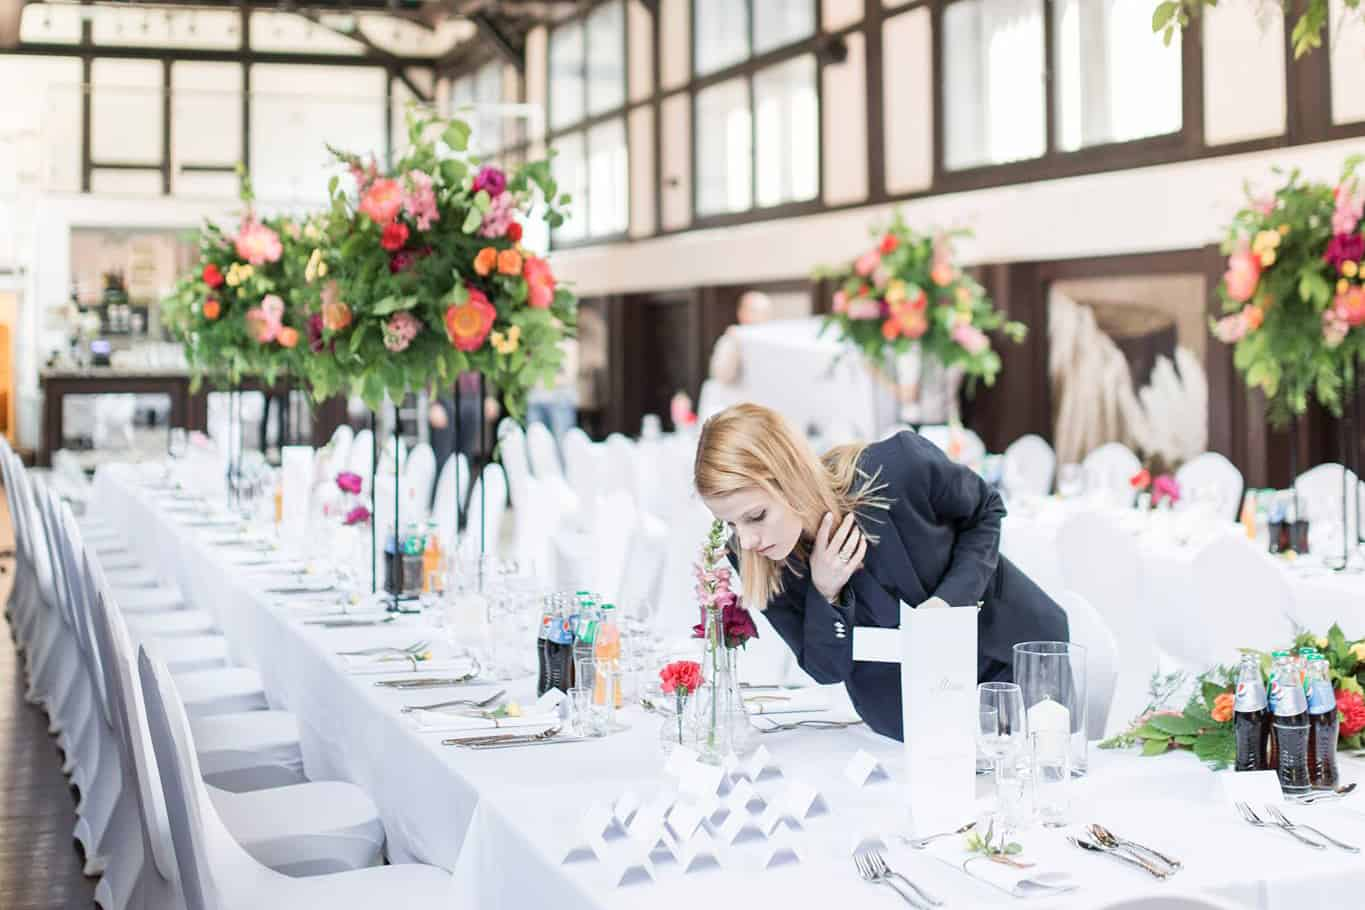 Beginners Guide On How To Start Your Own Event Management Company